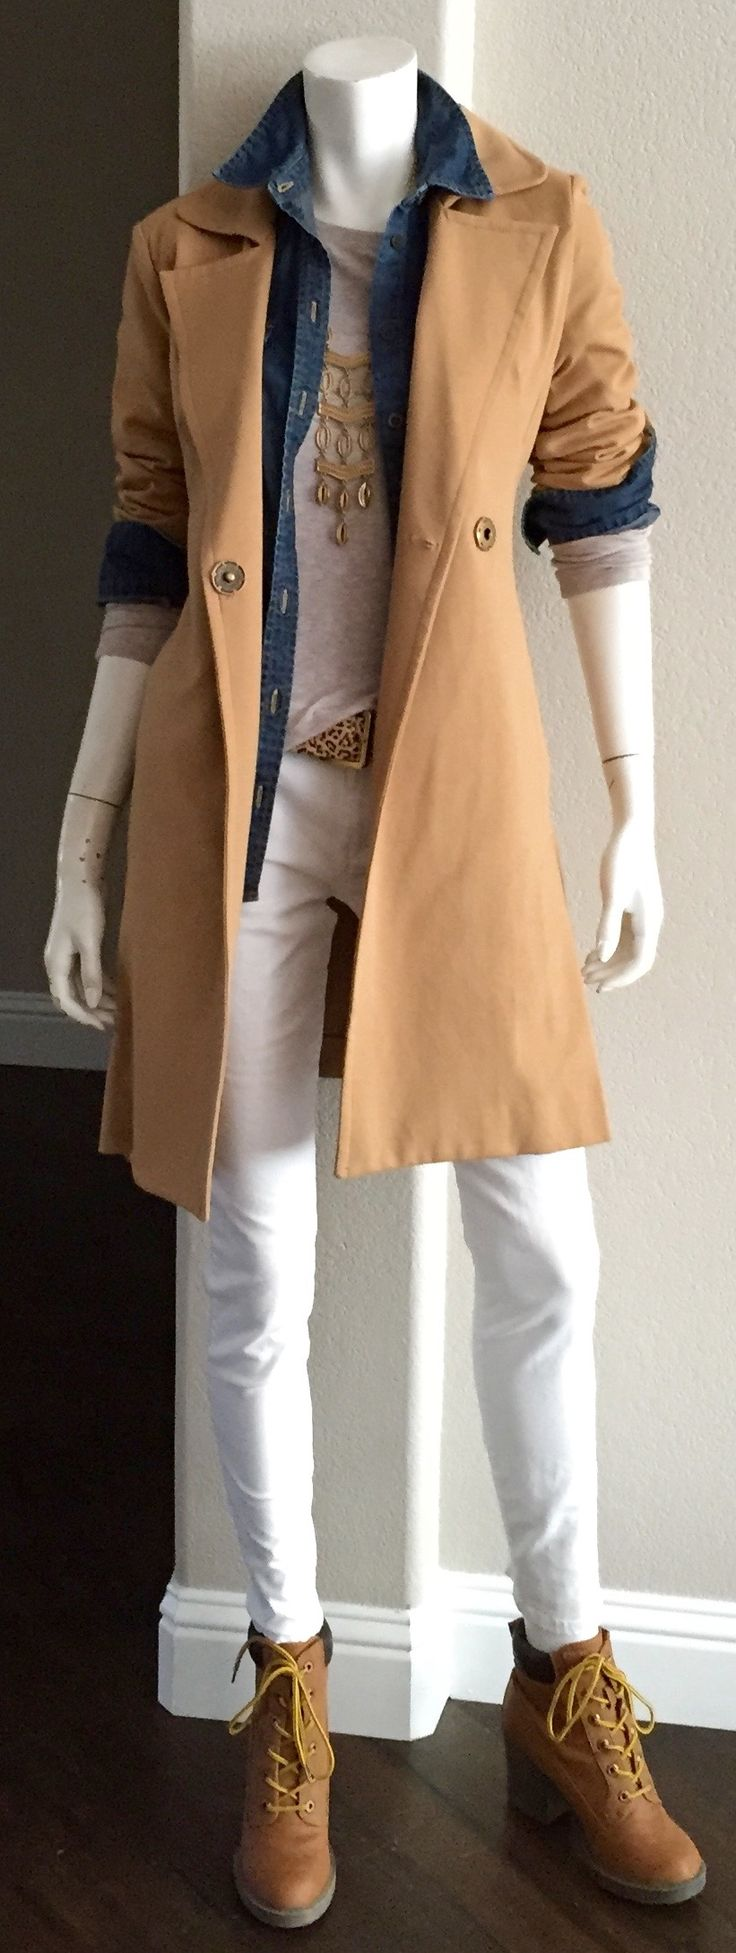 cabi Fall '15 Casablanca Trench, Kipling Belt & Pamper Me Tee with our vintage White Skinny Jean & denim shirt & a cool pair of high heeled construction boots. Not your kind of footwear. That's cool. Do a great riding boot, a bootie, or even a flat. #camelcoat #cabiclothing